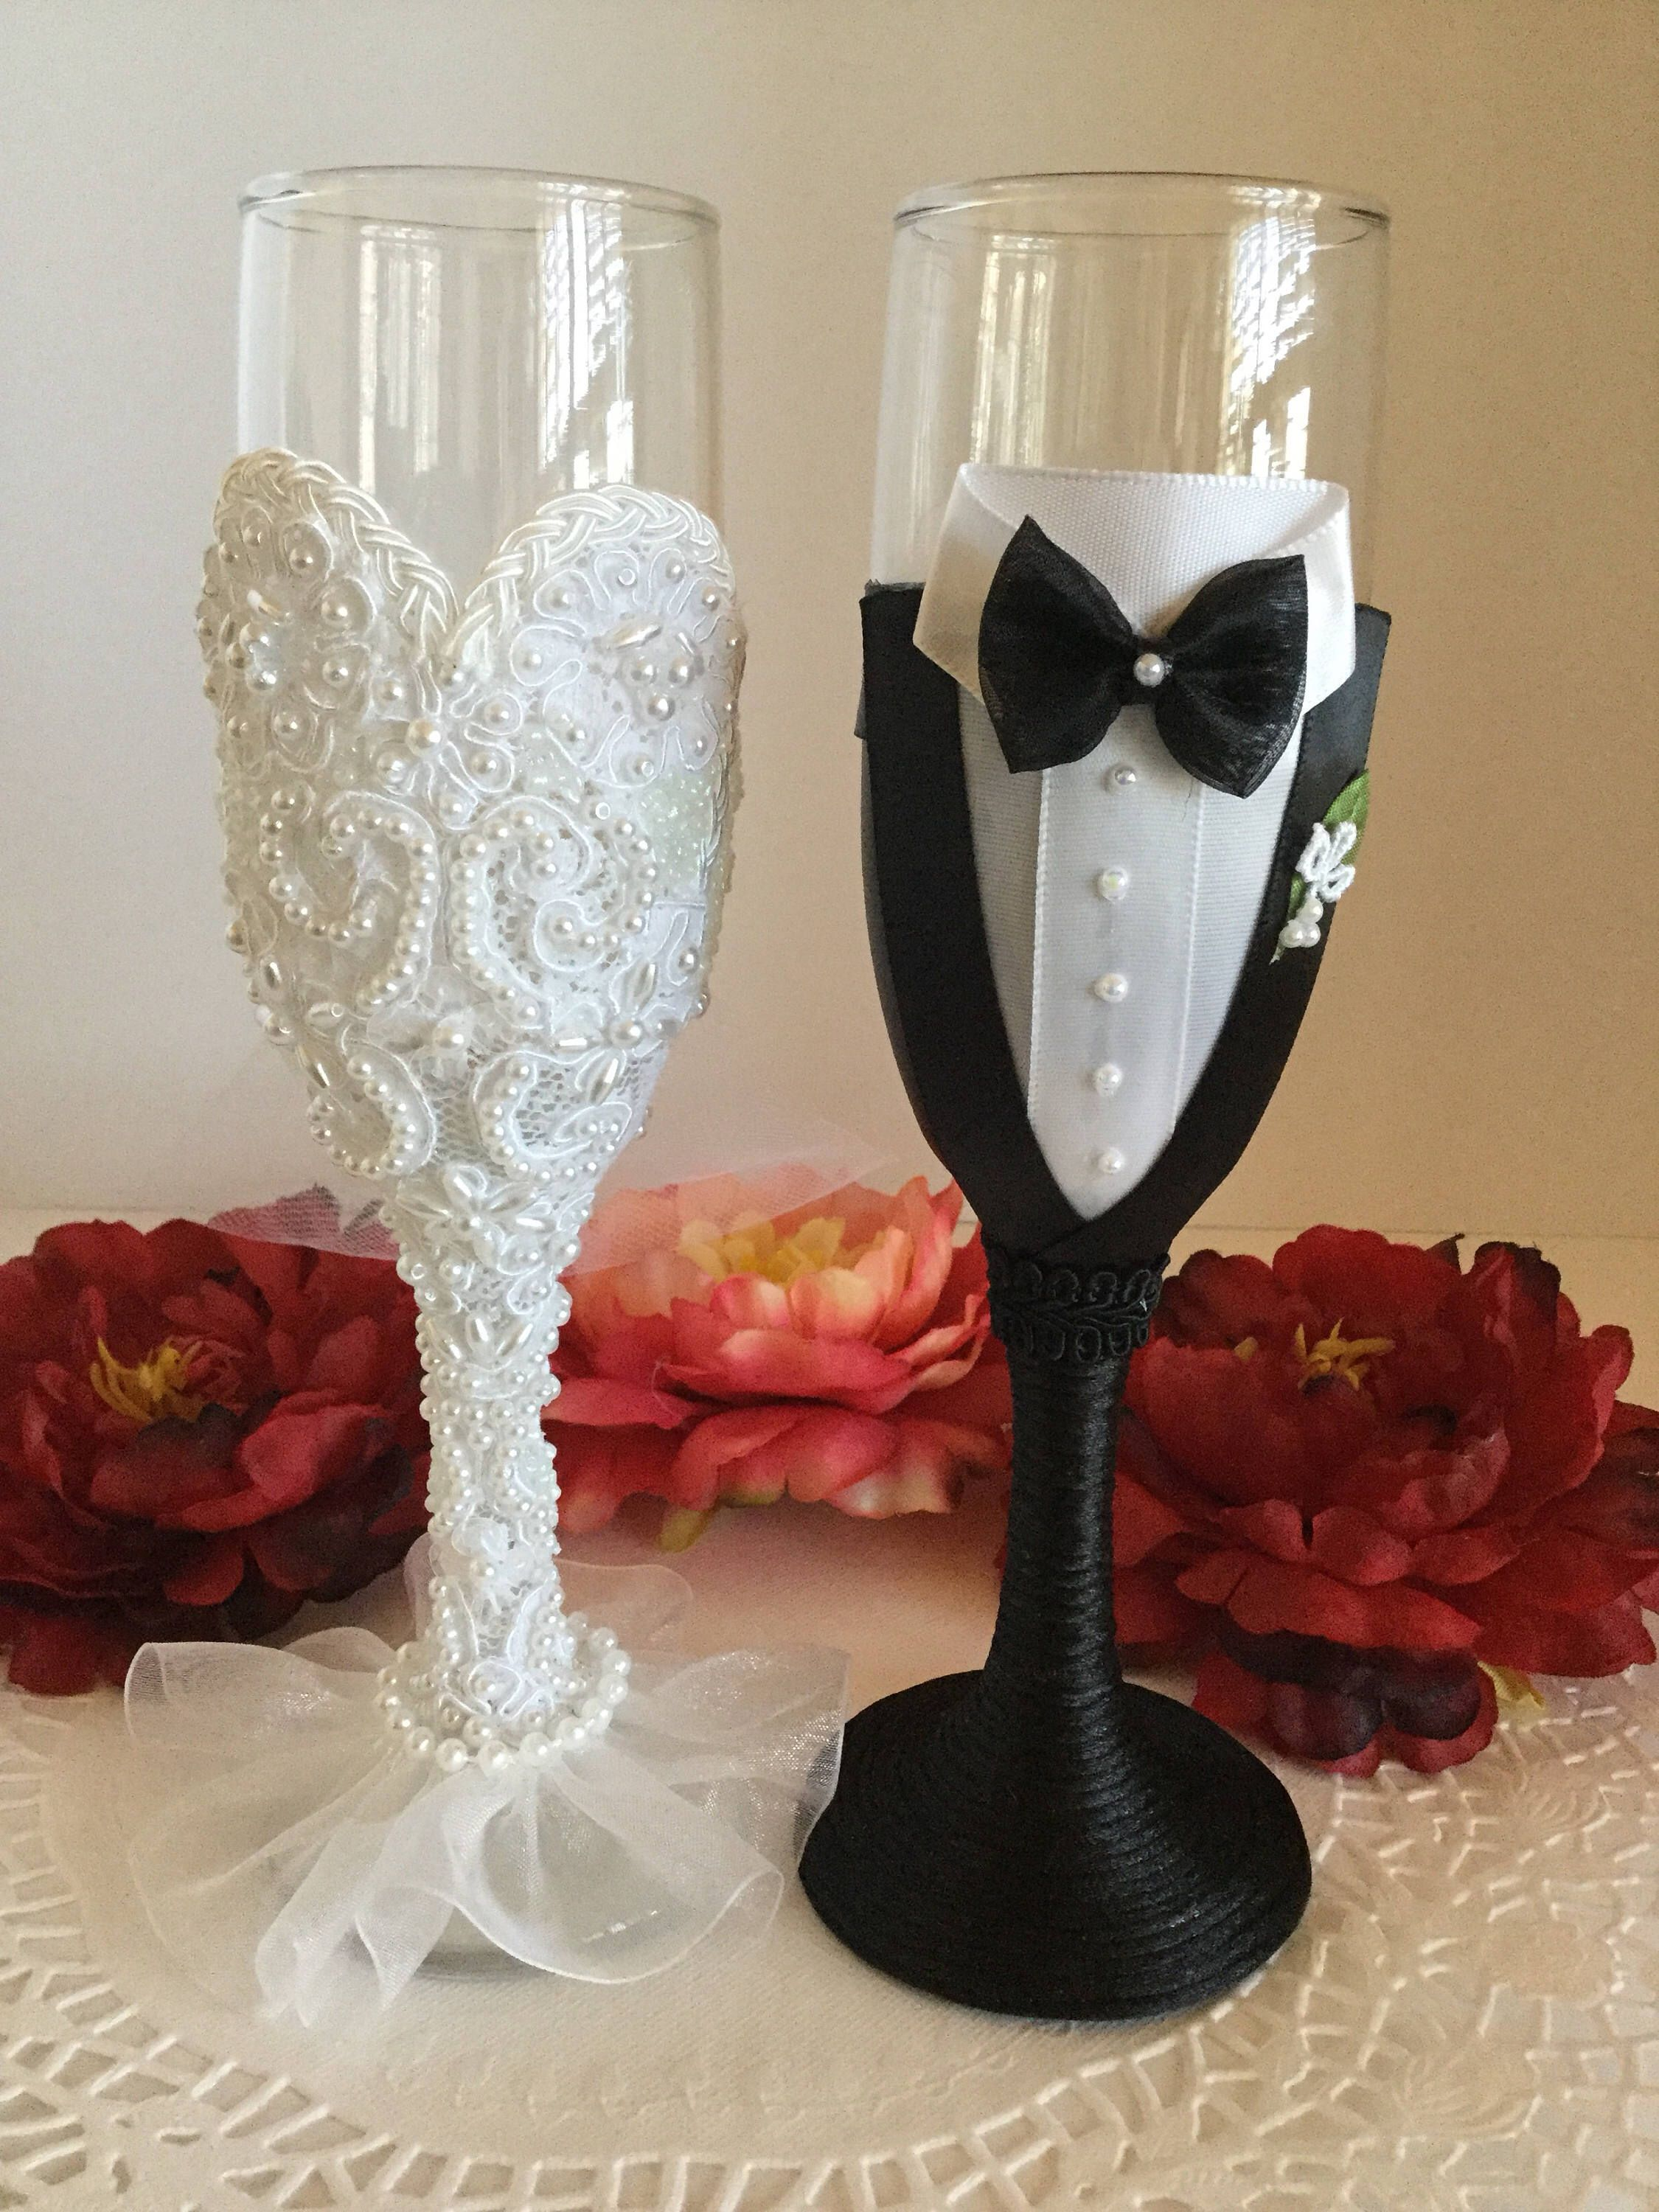 Haute Couture Bride And Groom Champagne Glasses Beautiful Wedding Champagne Glasses Champagne Glasses Decorated Wedding Champagne Flutes